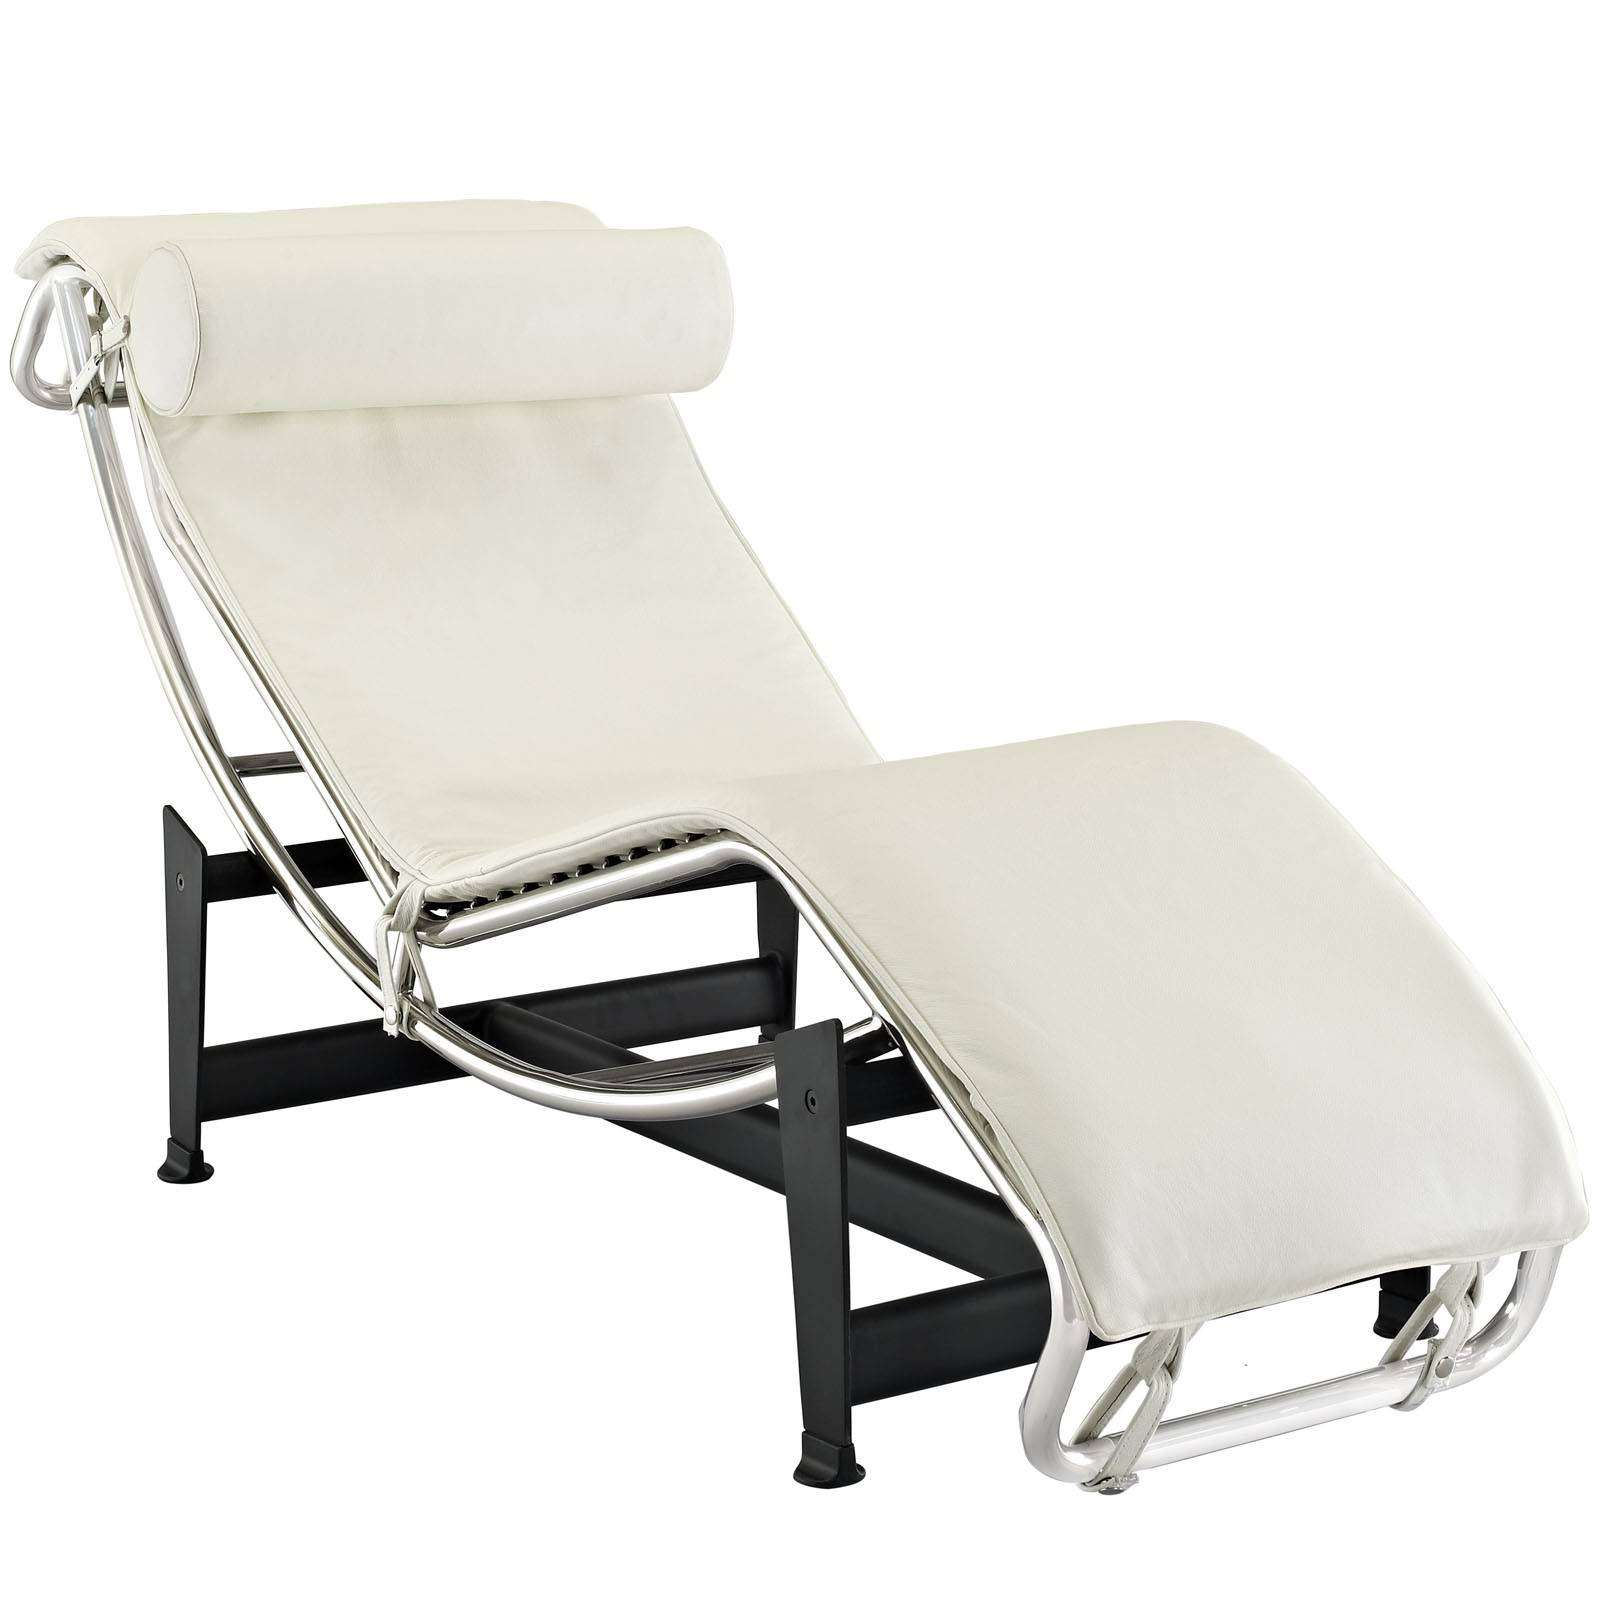 Le Corbusier Style Lc Chaise Lounge Chair Leather